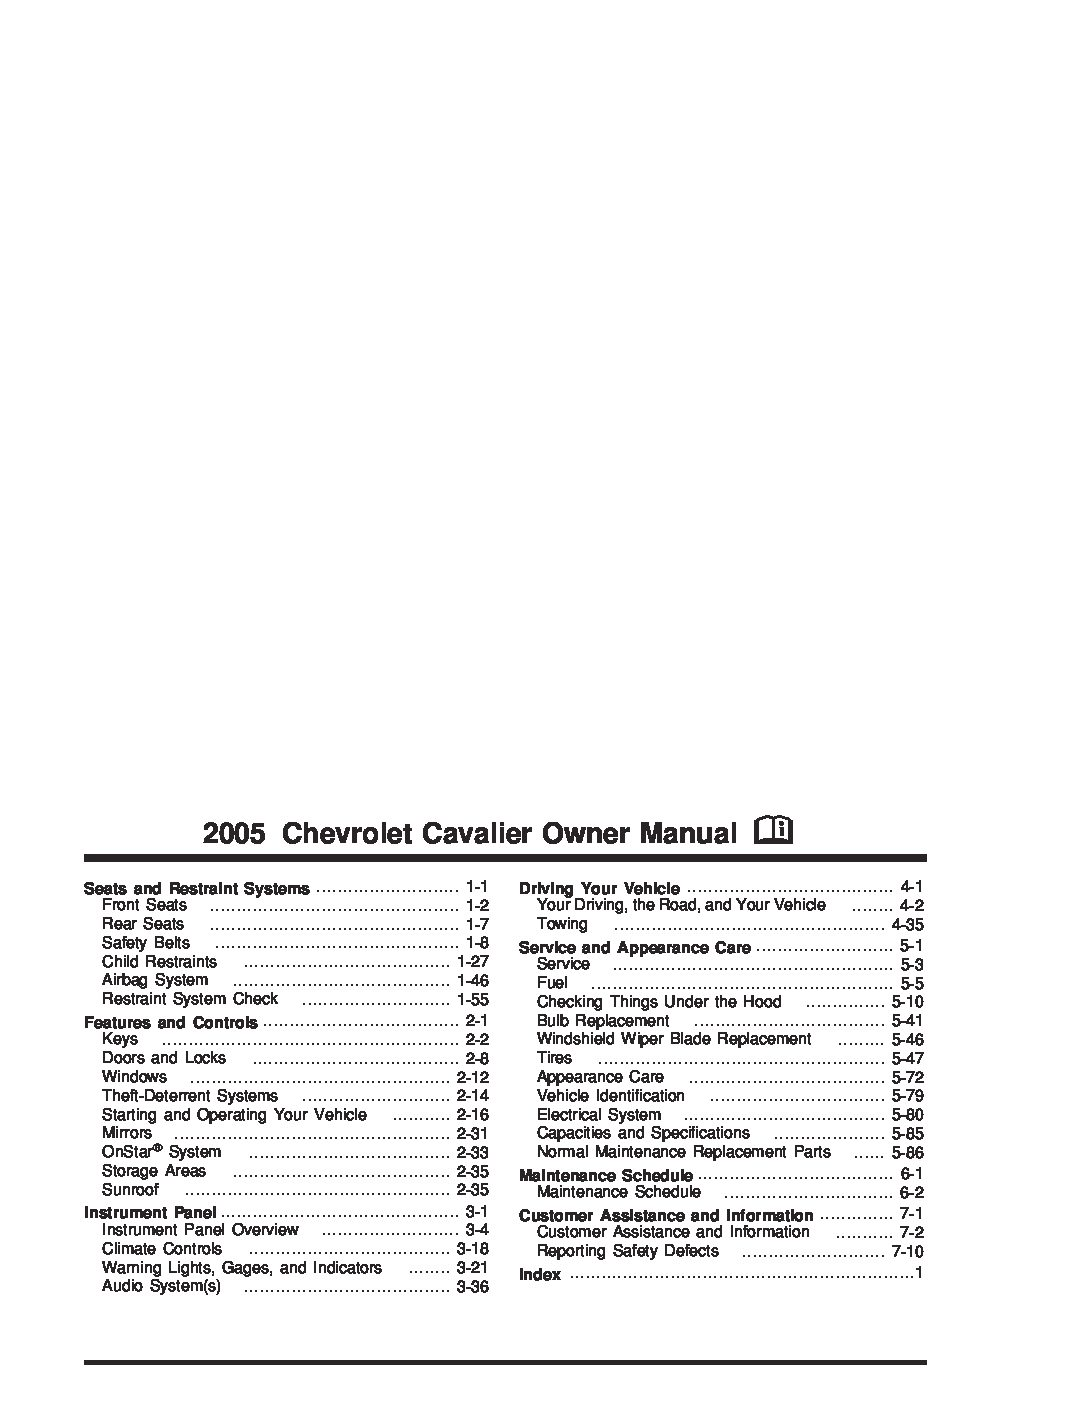 2005 chevrolet cavalier Owners Manual | Just Give Me The Manual